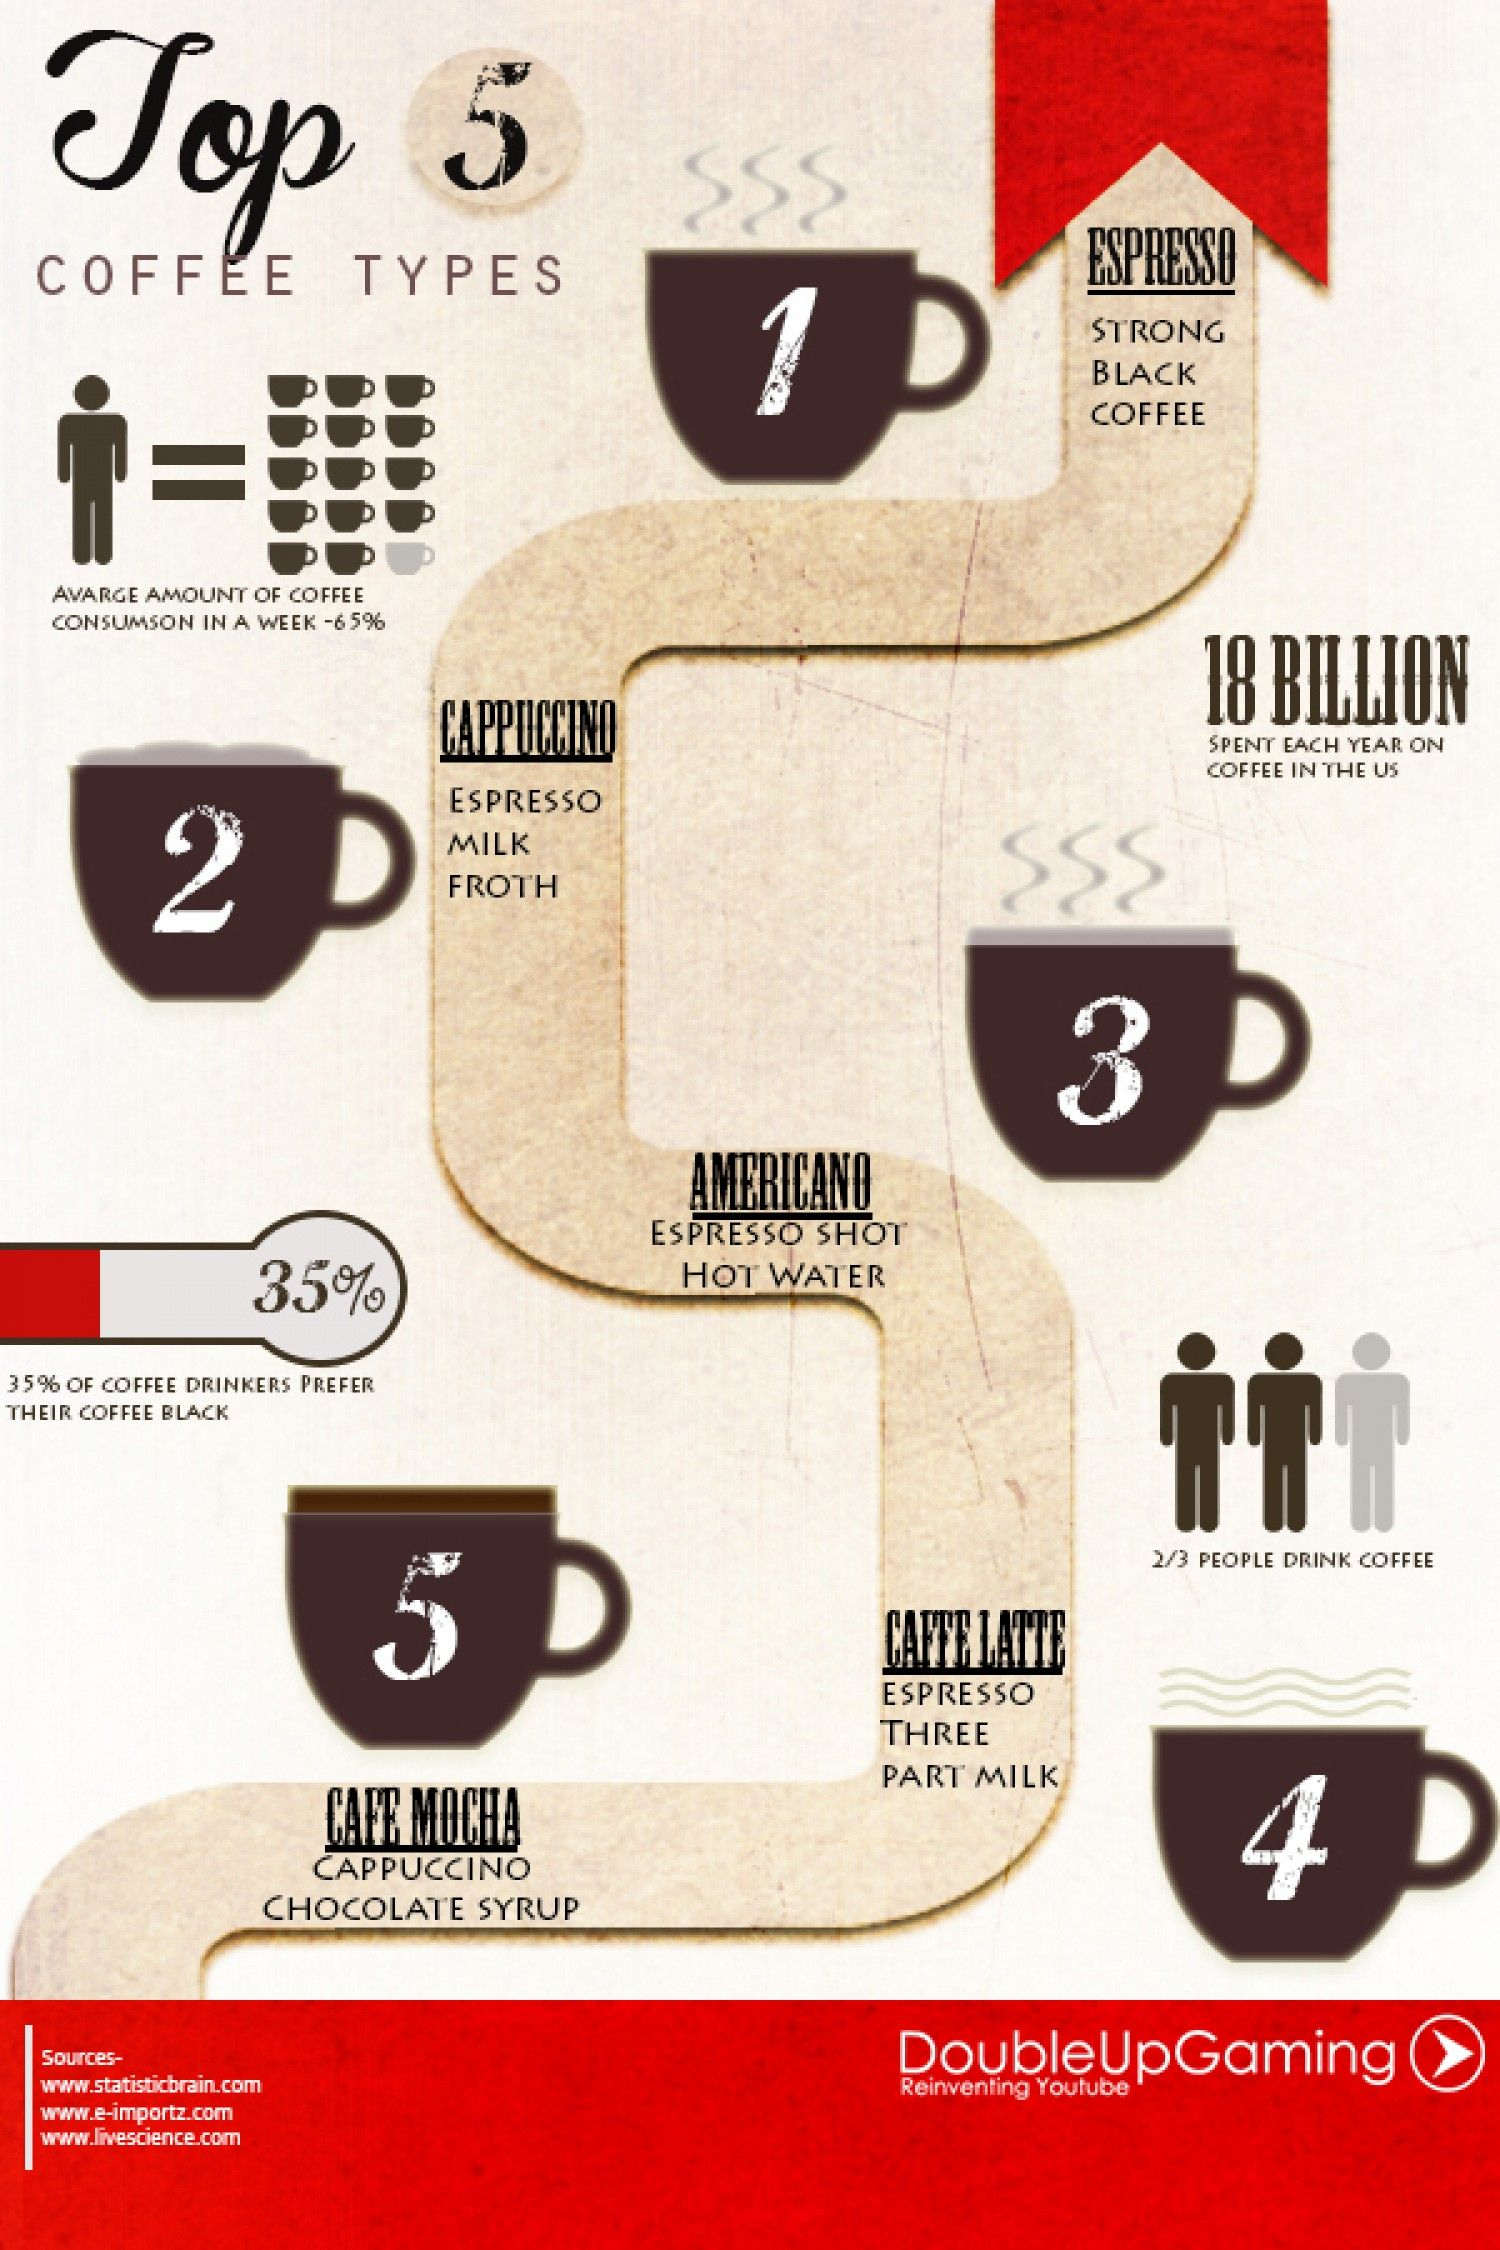 top 5 coffee types an info graphic with statistical information